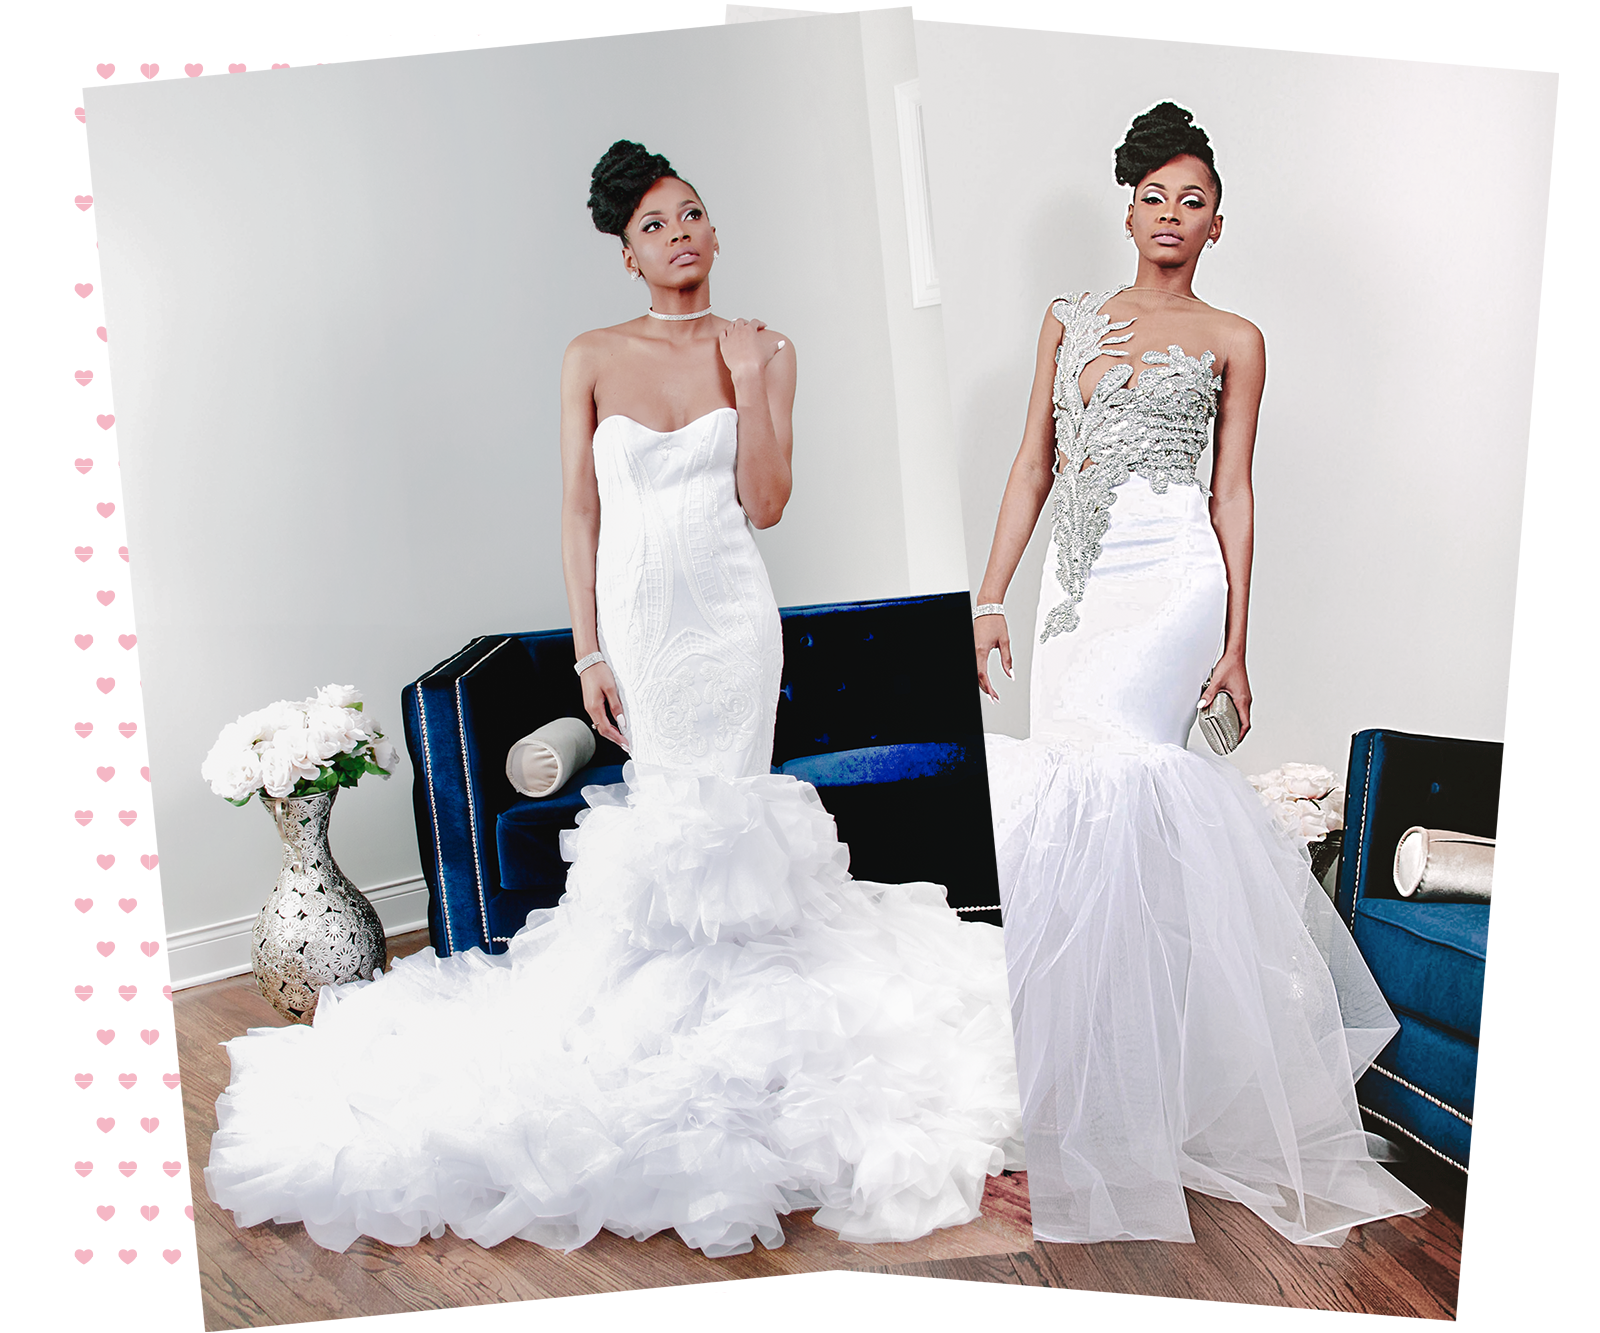 Project Runway Season 14 Contestant, Laurie Underwood goes Bridal - Traditional Pr   Media Relations